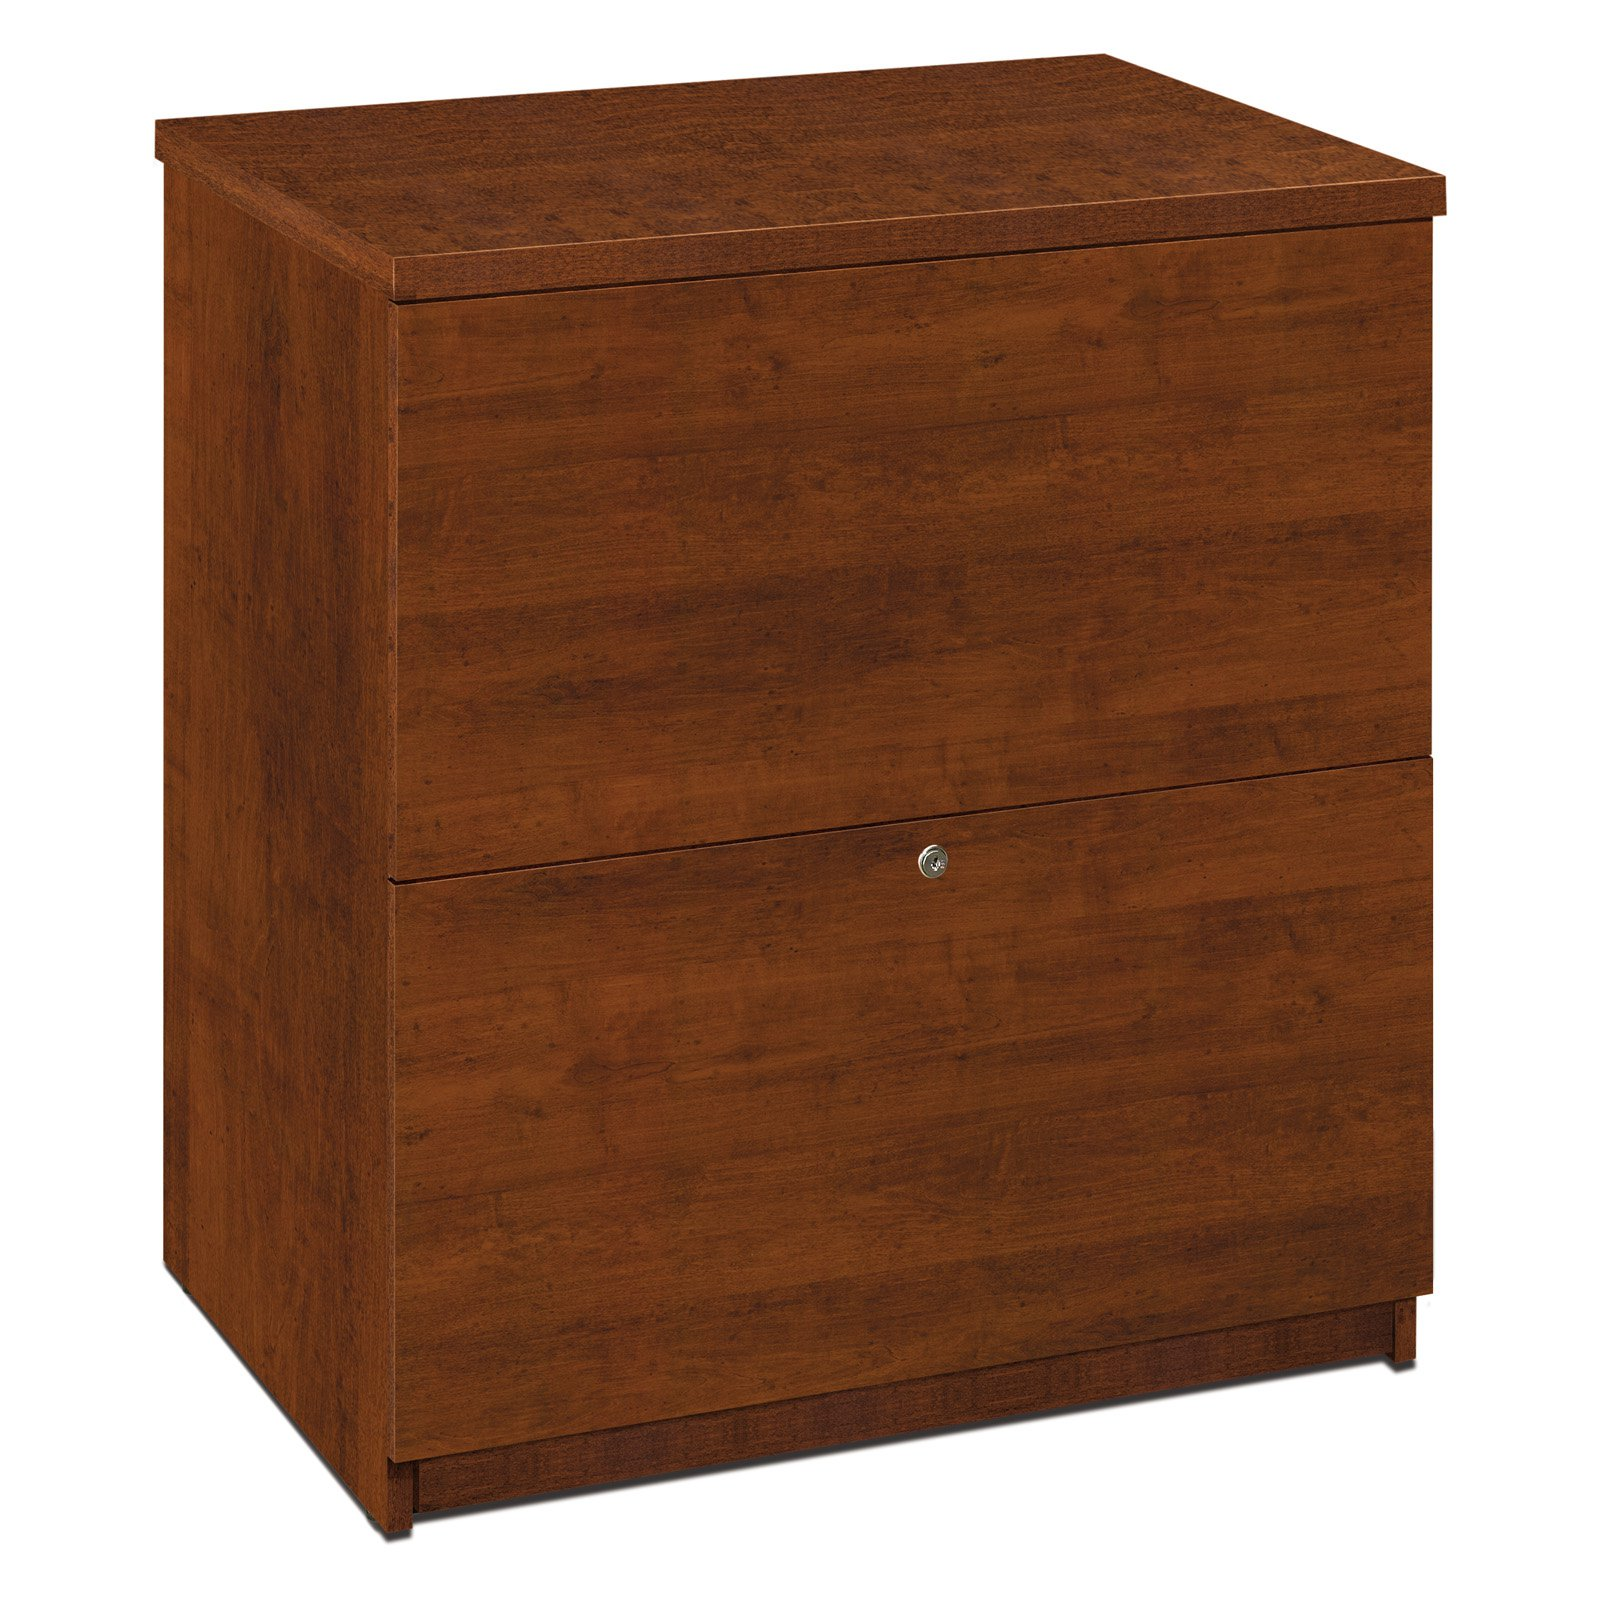 Bestar 2 Drawer Lateral Wood Filing Cabinet, Brown by Bestar